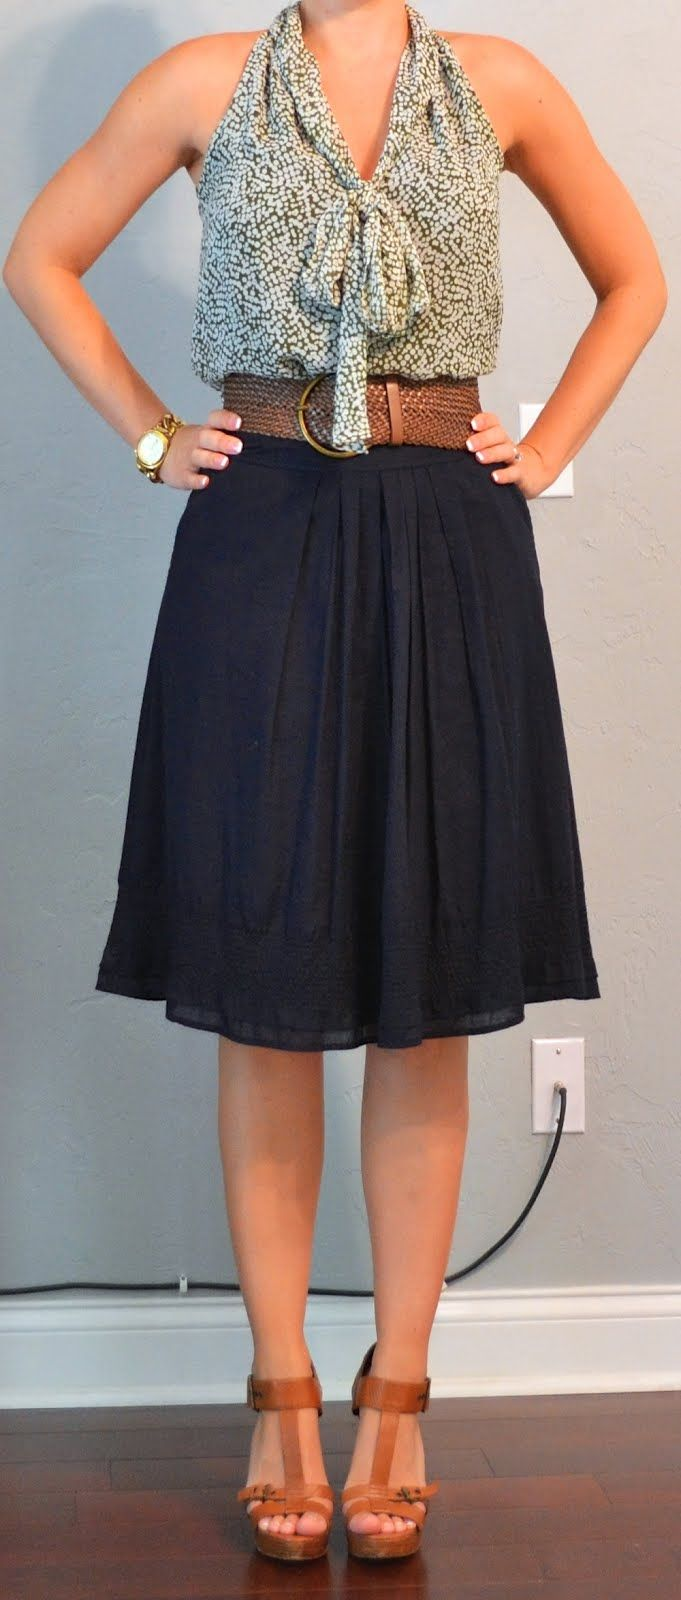 Outfit Posts: outfit posts: green tie blouse, navy a-line skirt, tan t-strap heels